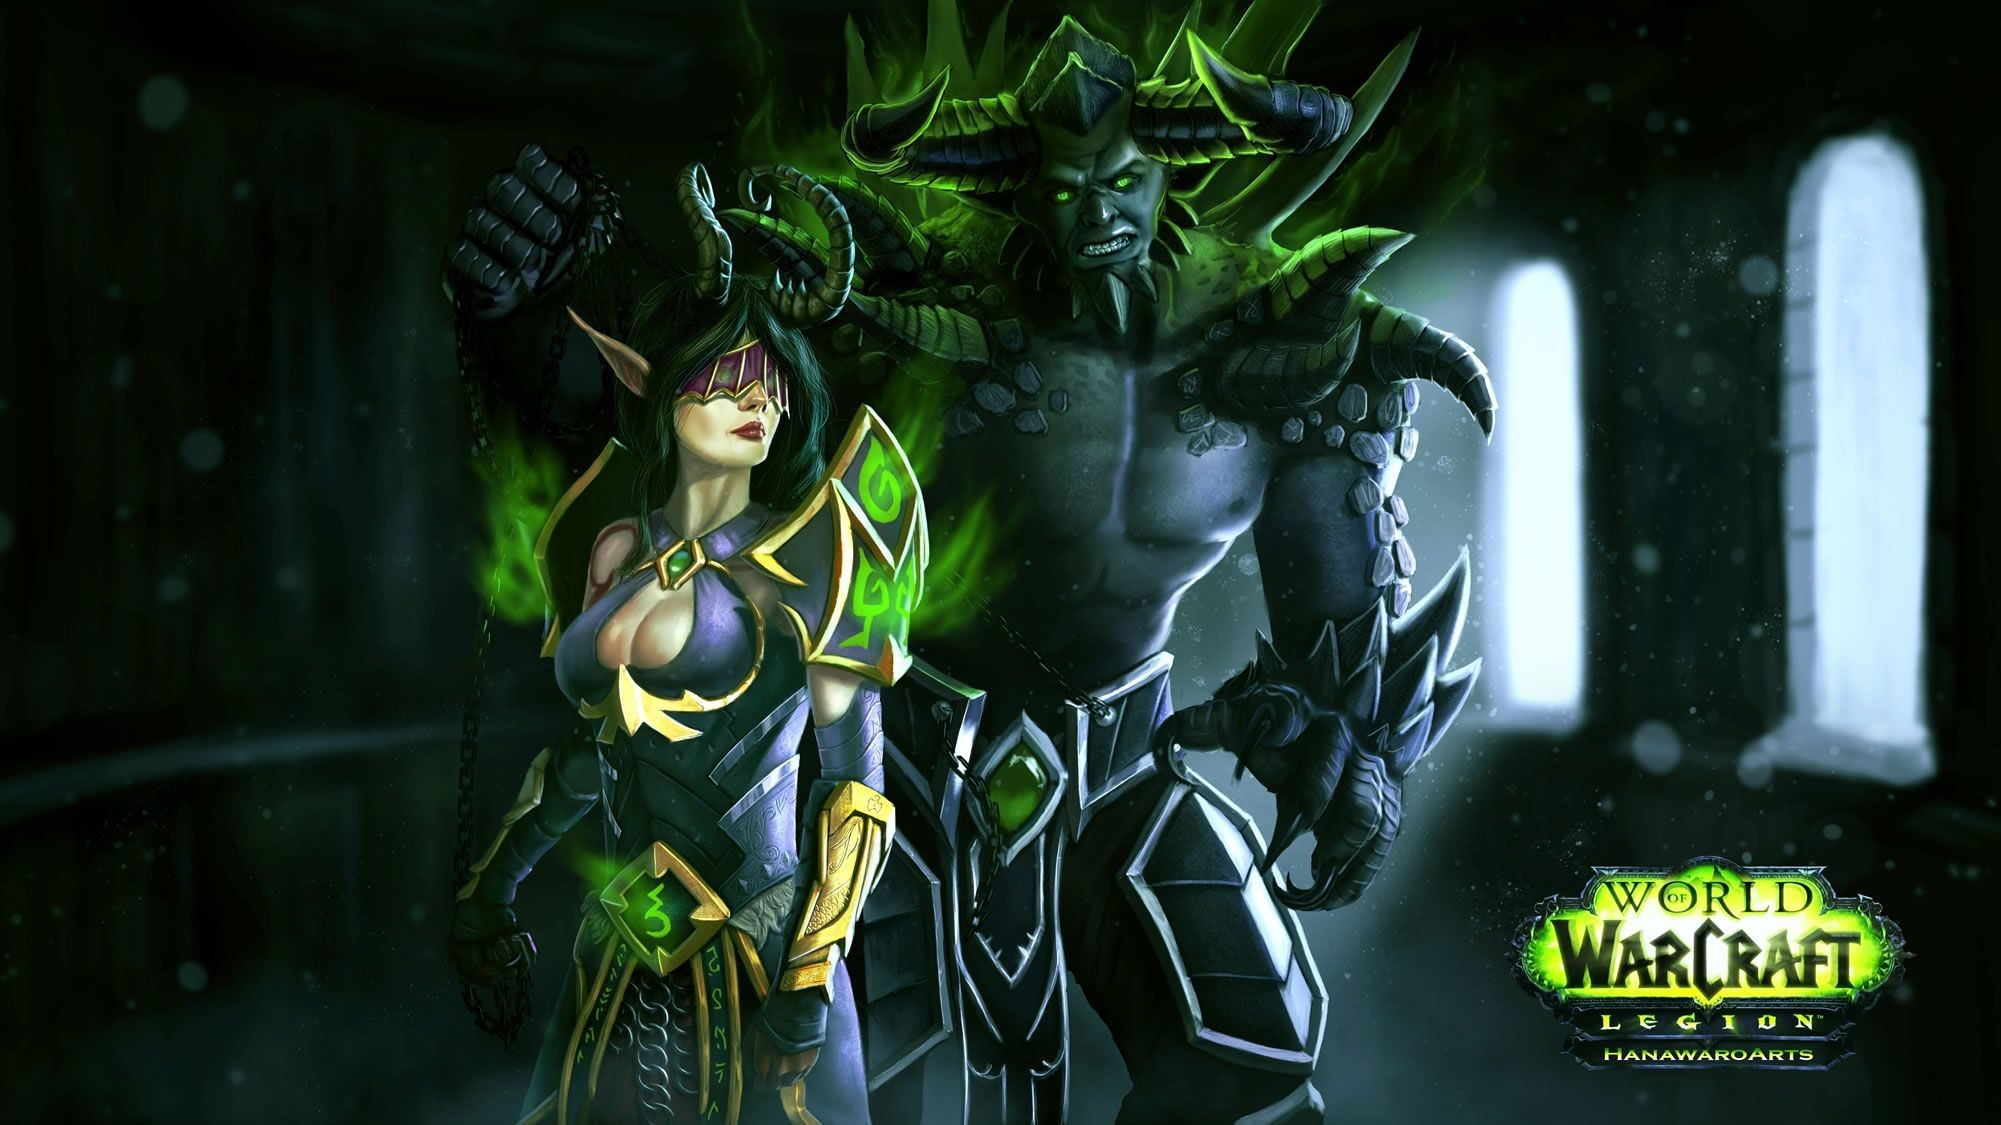 Res: 2001x1125, Full HD p World of warcraft Wallpapers HD, Desktop Backgrounds World of  Warcraft Legion Wallpapers Wallpapers)